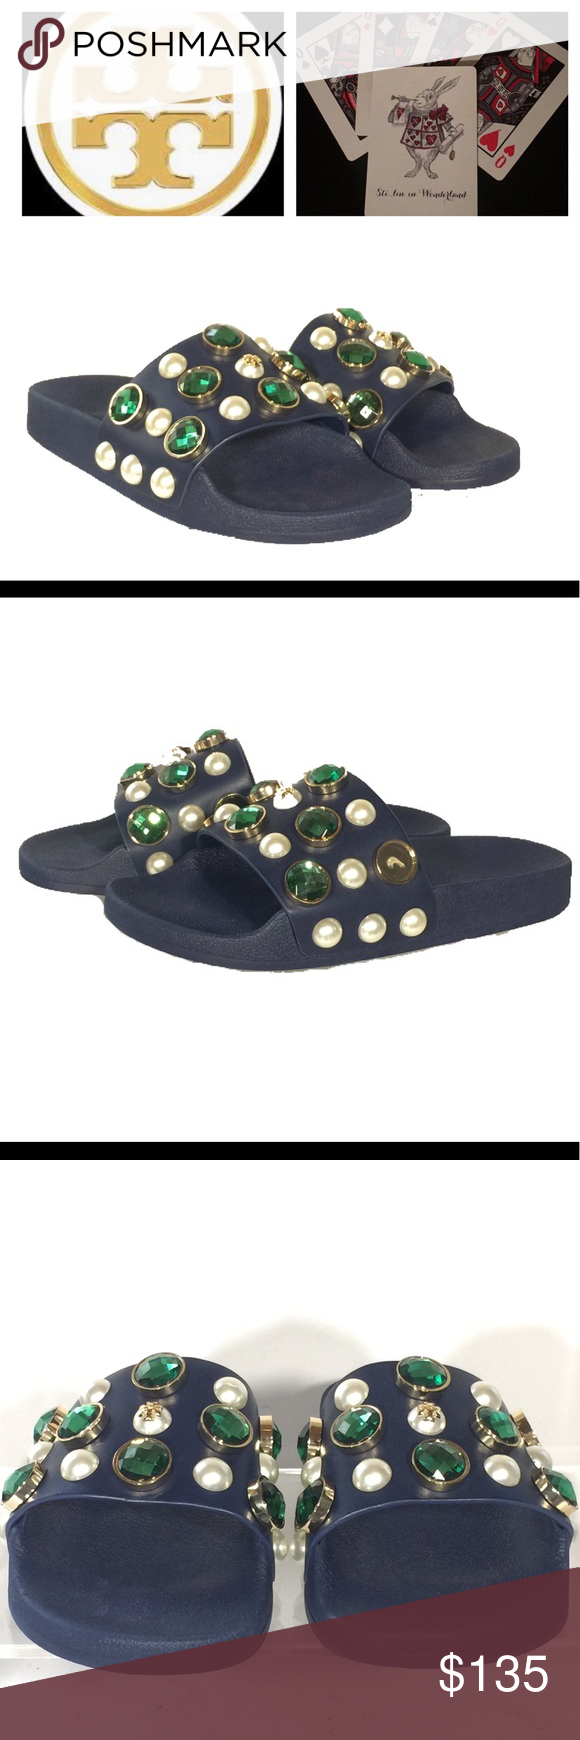 0d89682c5bbd New Tory Burch Vail Slide Sandals Sz 6 Jeweled   Brand - Tory Burch   Brand  new without box. One green gem is missing off side of left sandal and is ...